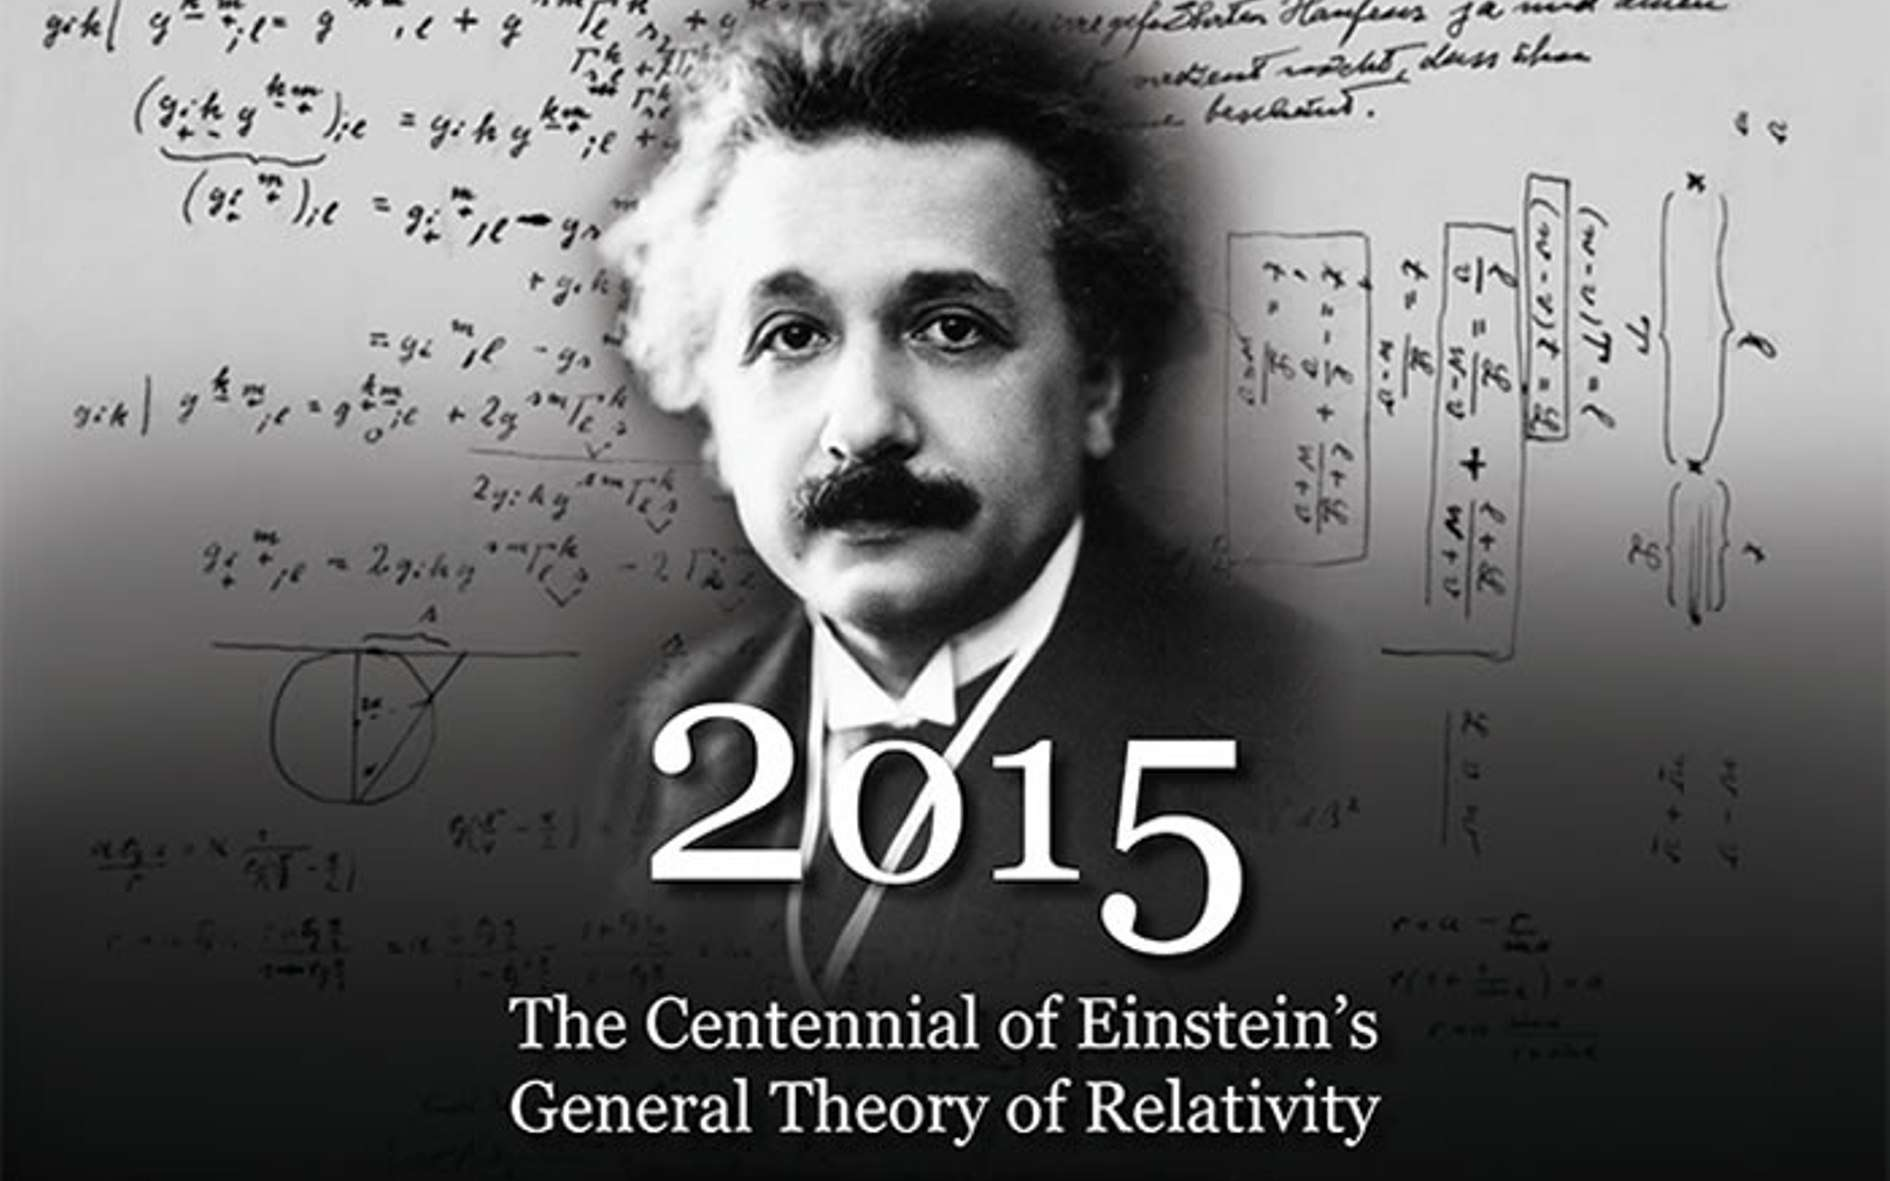 Is Einstein the example of the genius initially rejected by the system?